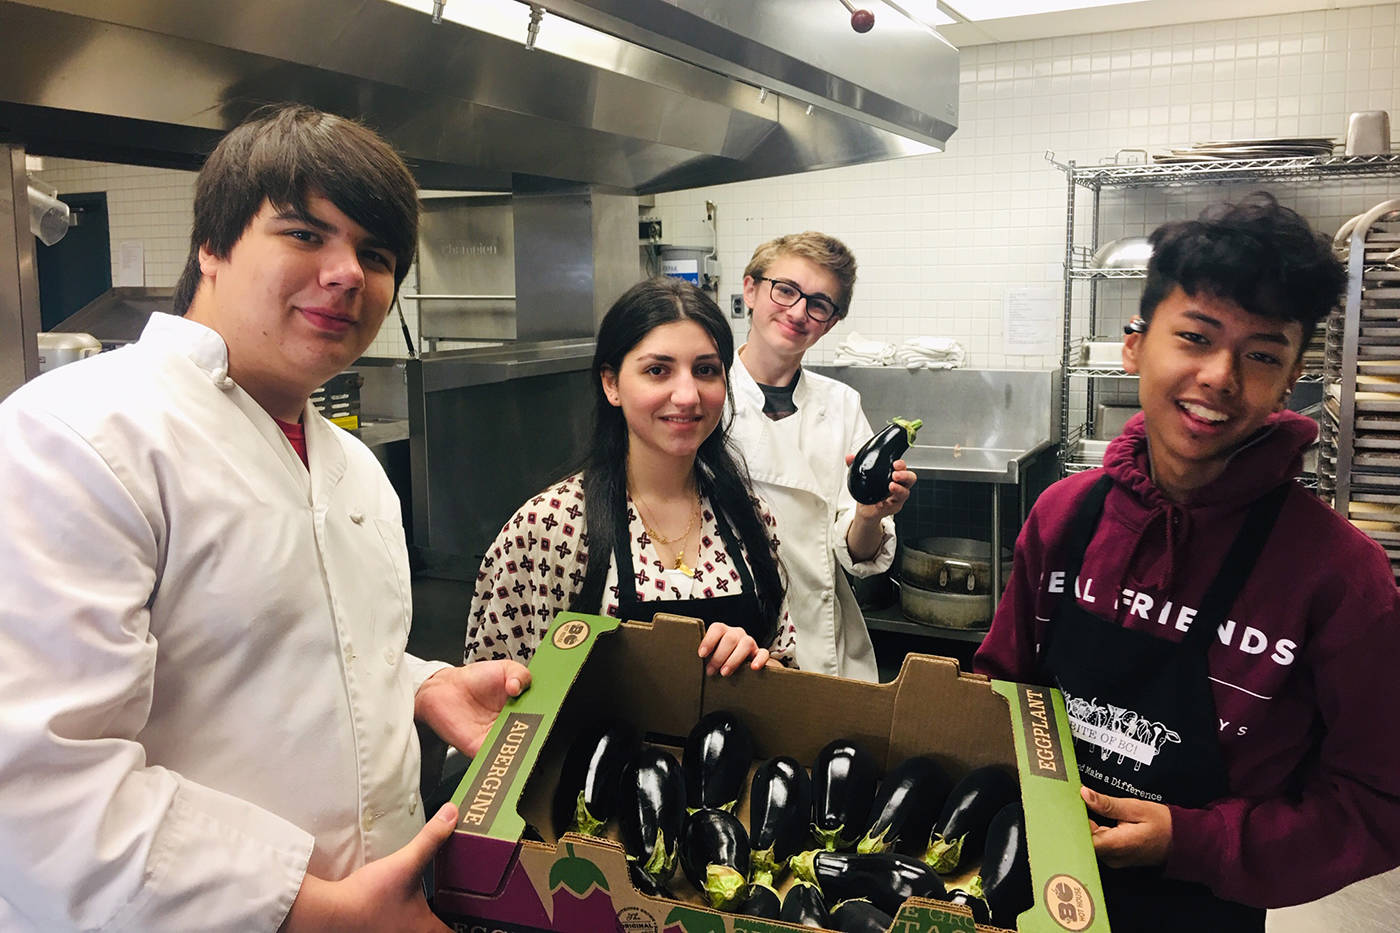 About 30 students from Guildford Park Secondary are heading to the upcoming engAGe event in Vancouver, an event geared towards growing the future of agriculture. (Submitted)